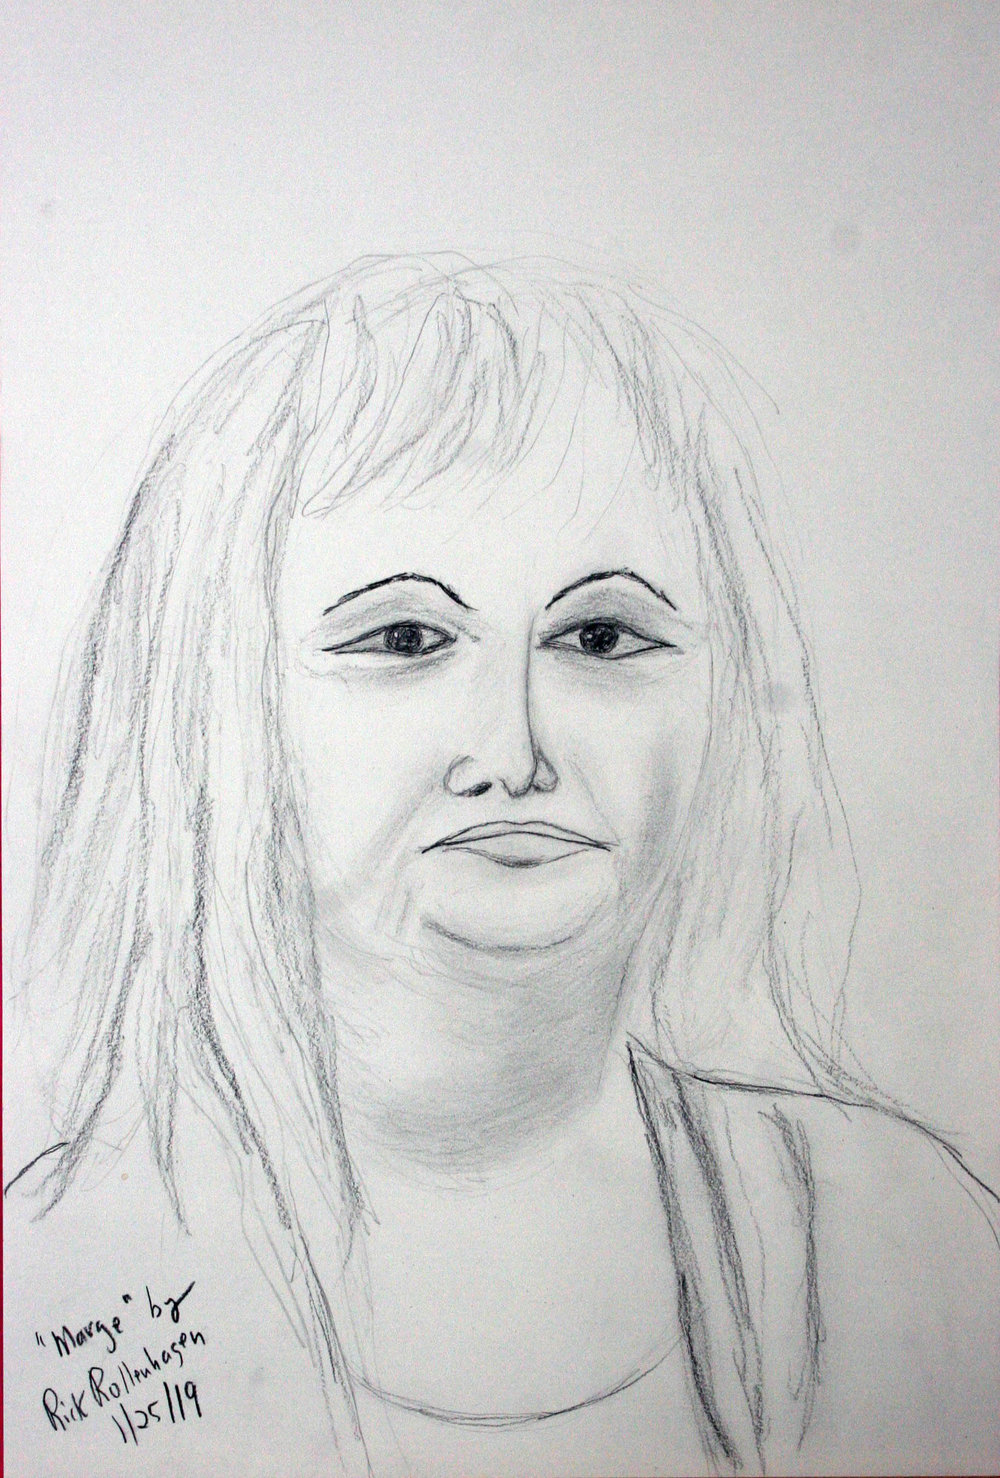 Rick Rollenhagen did this drawing.